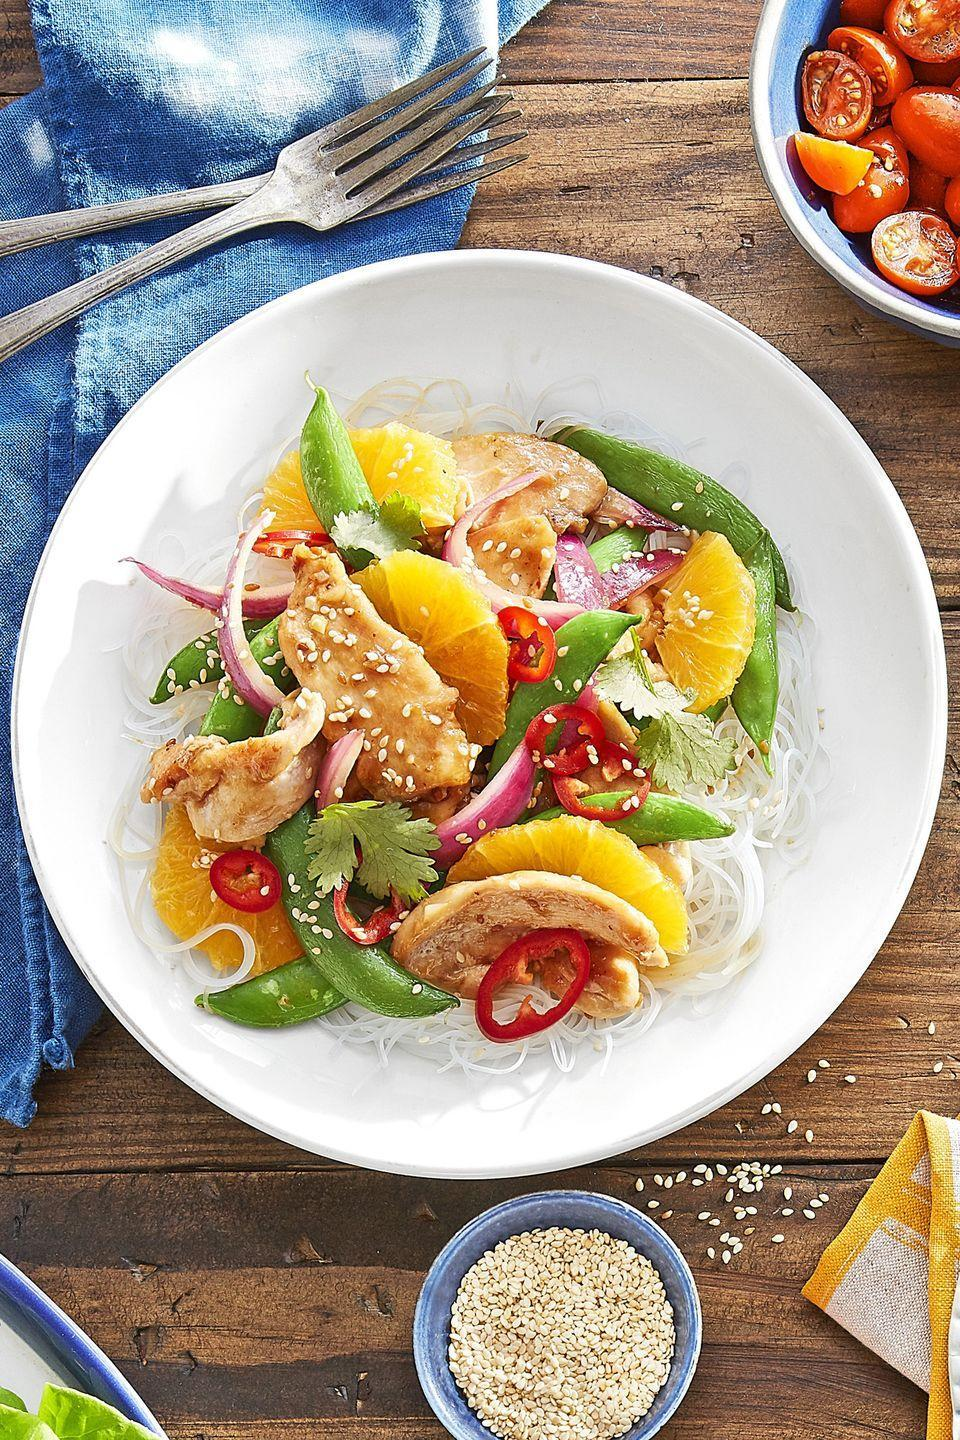 """<p>Sweet sugar snap peas and sliced oranges give color and sweetness to this chicken stir-fry.</p><p><strong><a href=""""https://www.countryliving.com/food-drinks/recipes/a44282/sugar-snap-orange-teriyaki-stir-fry-recipe/"""" rel=""""nofollow noopener"""" target=""""_blank"""" data-ylk=""""slk:Get the recipe"""" class=""""link rapid-noclick-resp"""">Get the recipe</a>.</strong></p>"""